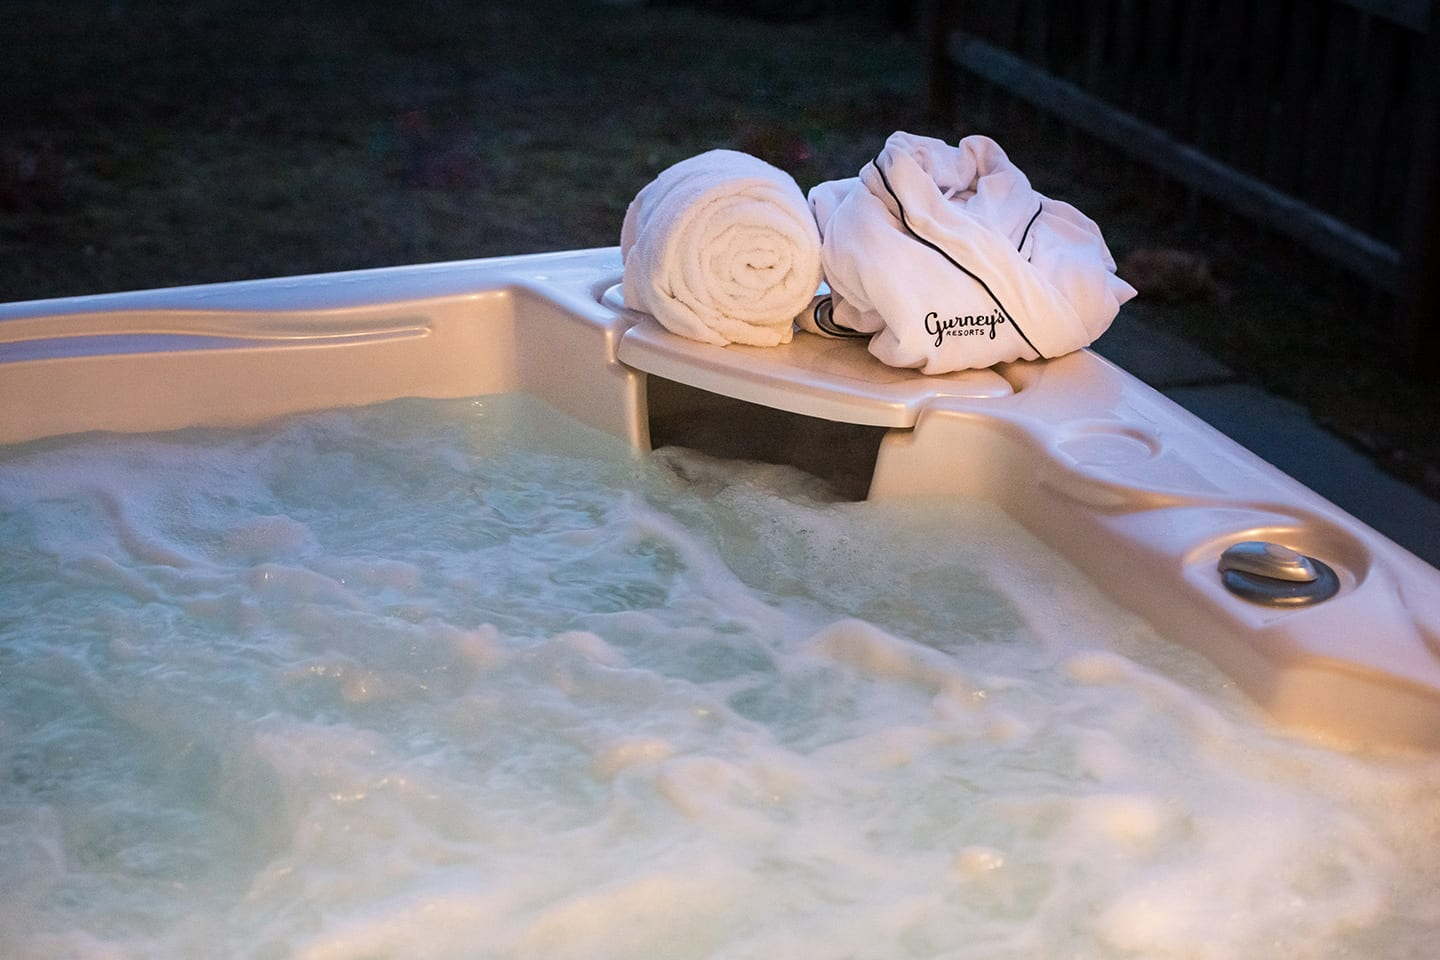 Close up of the jacuzzi with a Gurney's robe and towel